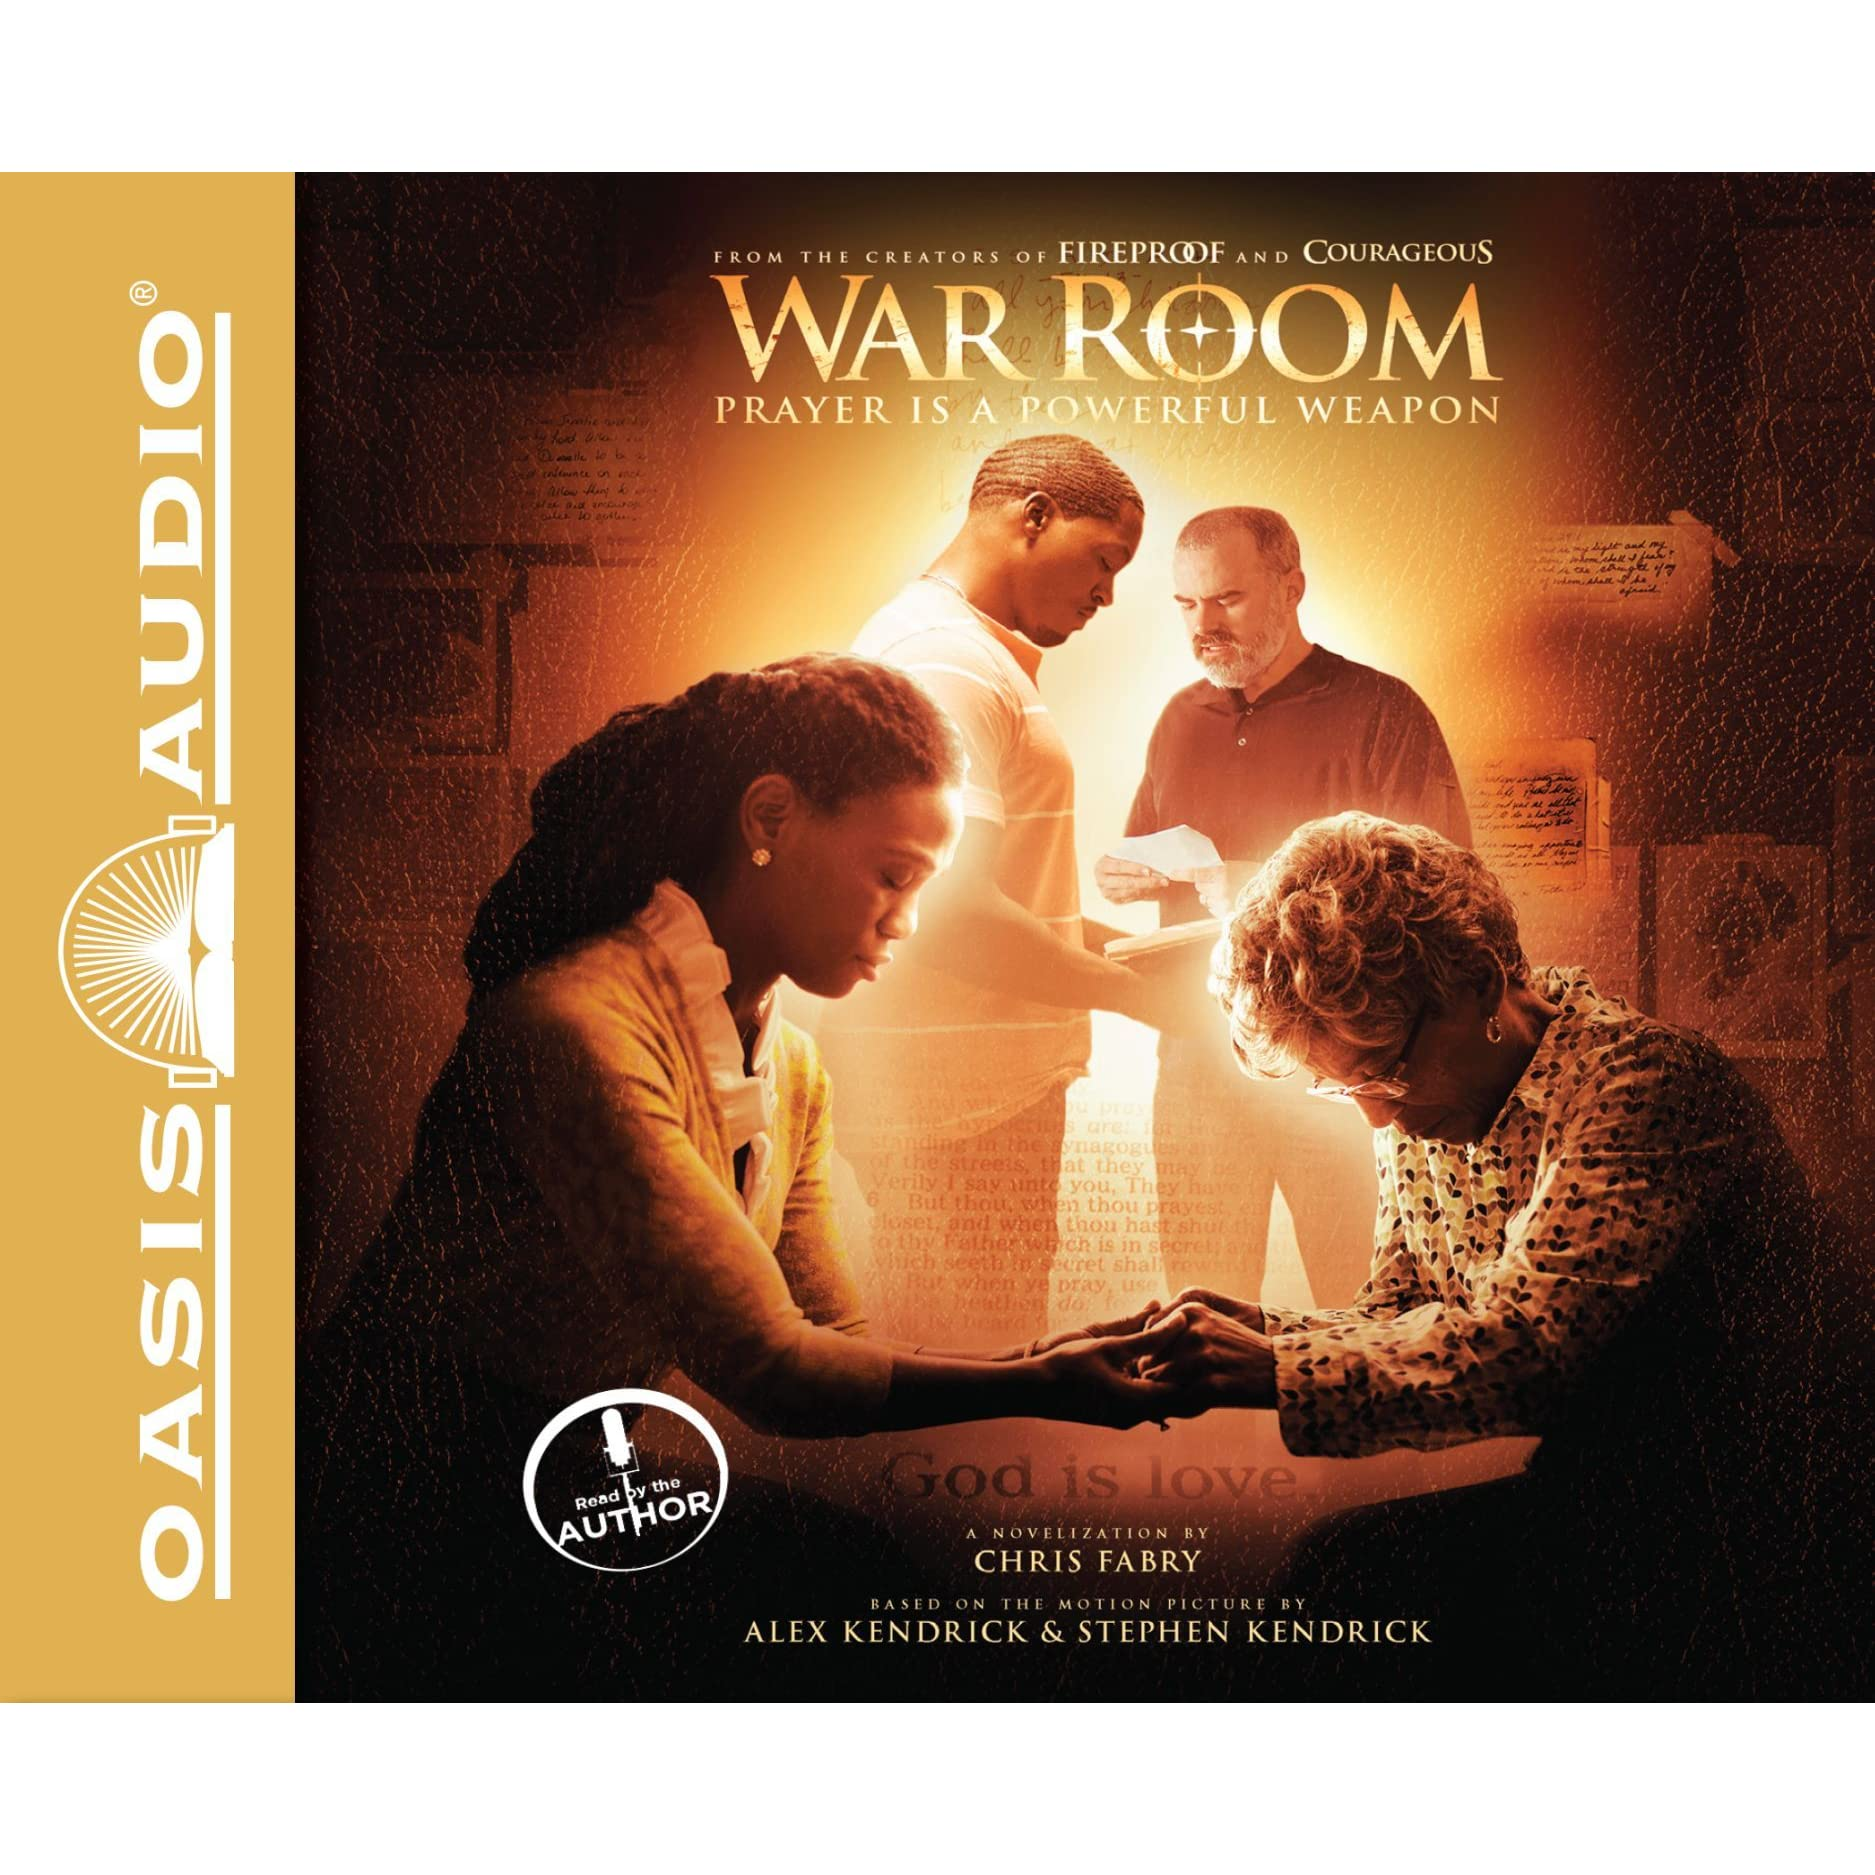 War Room Prayer Is a Powerful Weapon by Chris Fabry